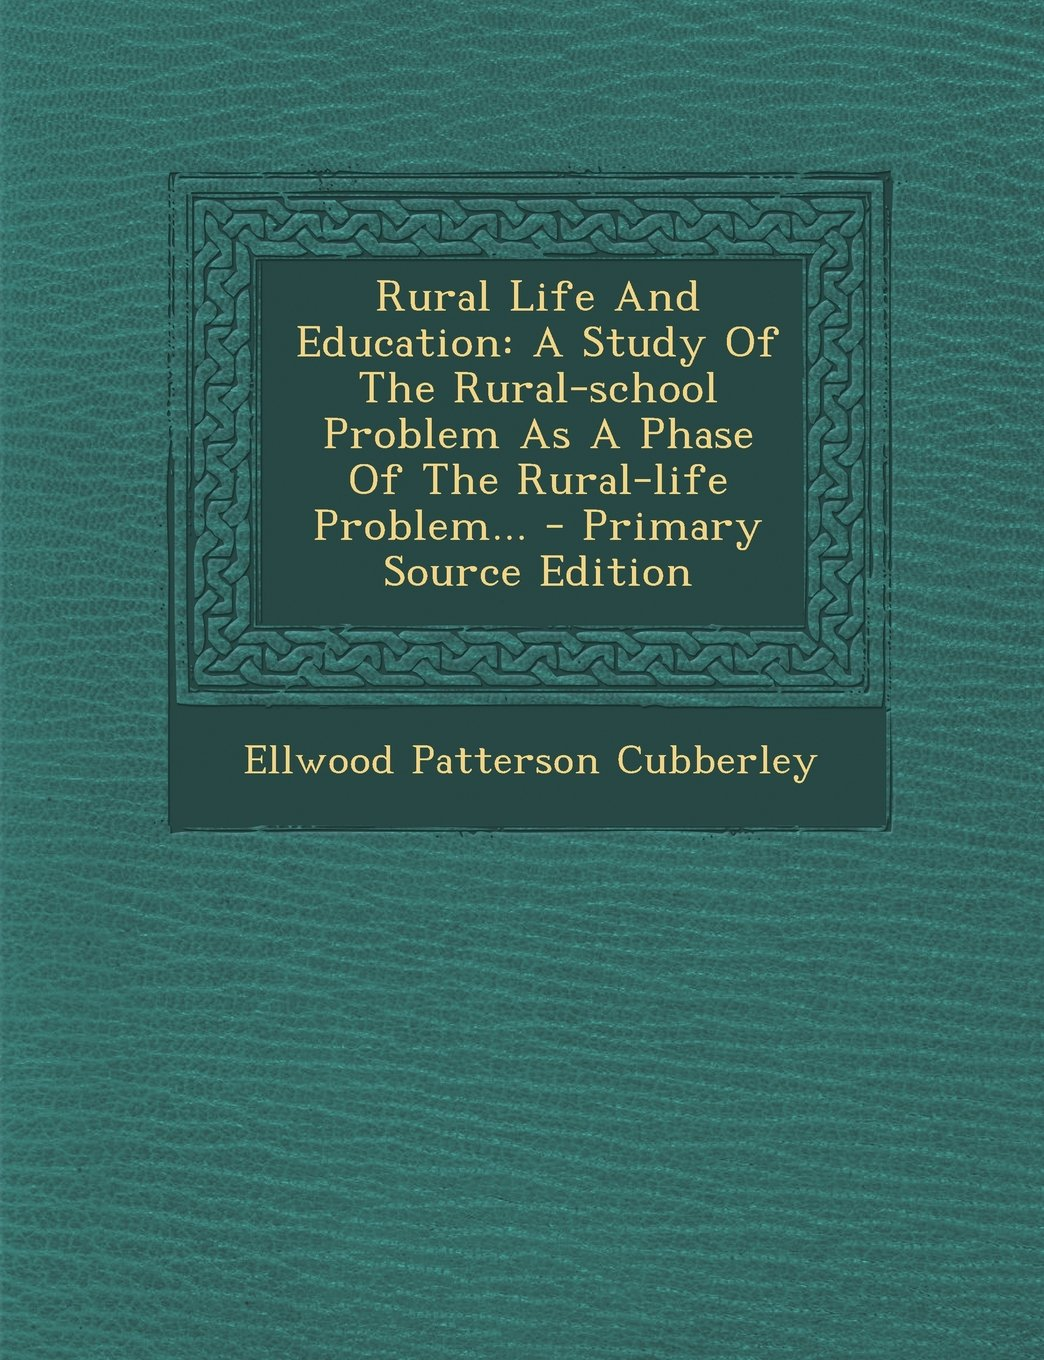 Download Rural Life And Education: A Study Of The Rural-school Problem As A Phase Of The Rural-life Problem... pdf epub